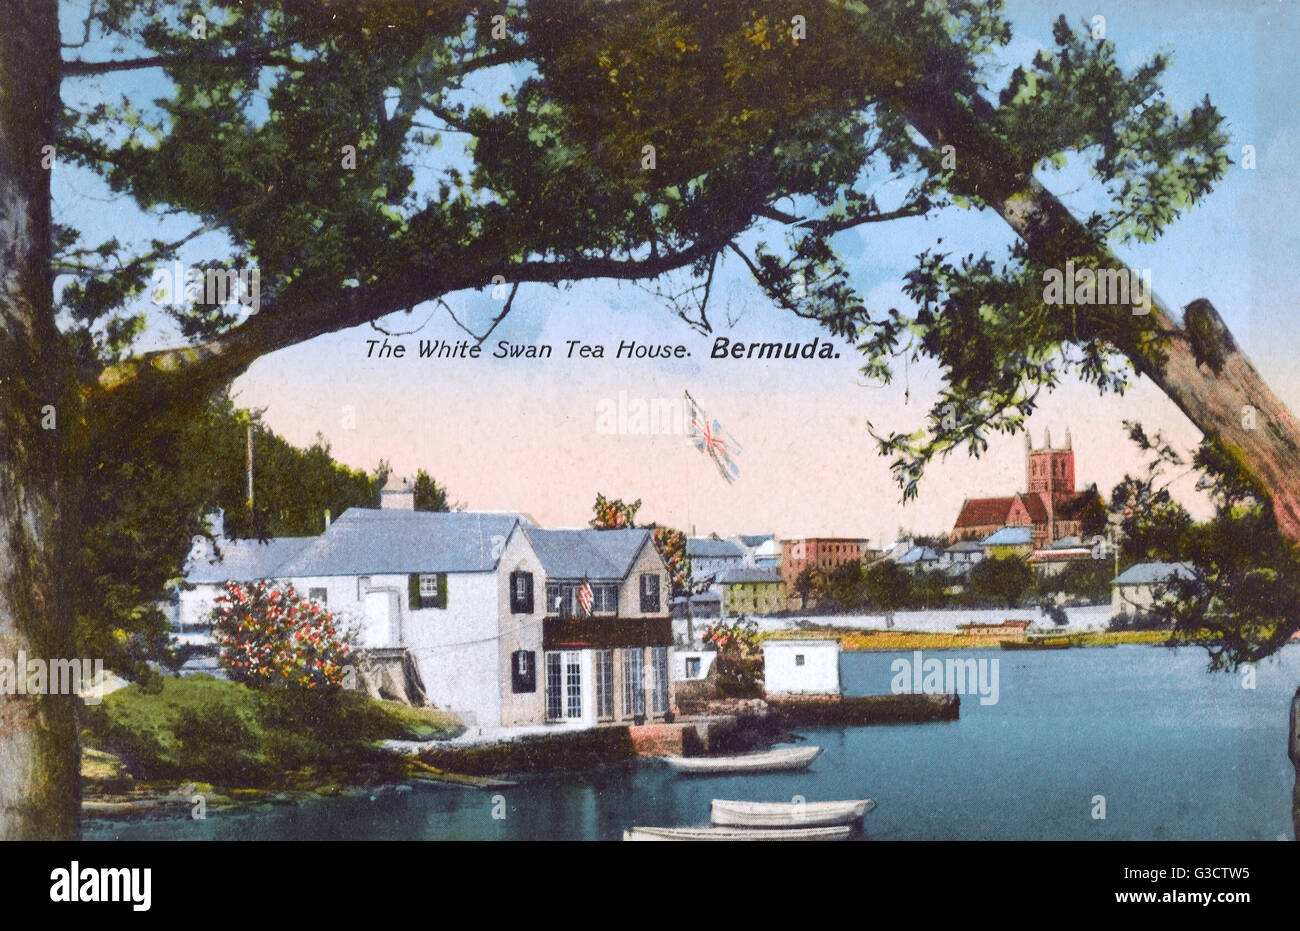 The White Swan Tea House, Hamilton, Bermuda.     Date: circa 1910s Stock Photo